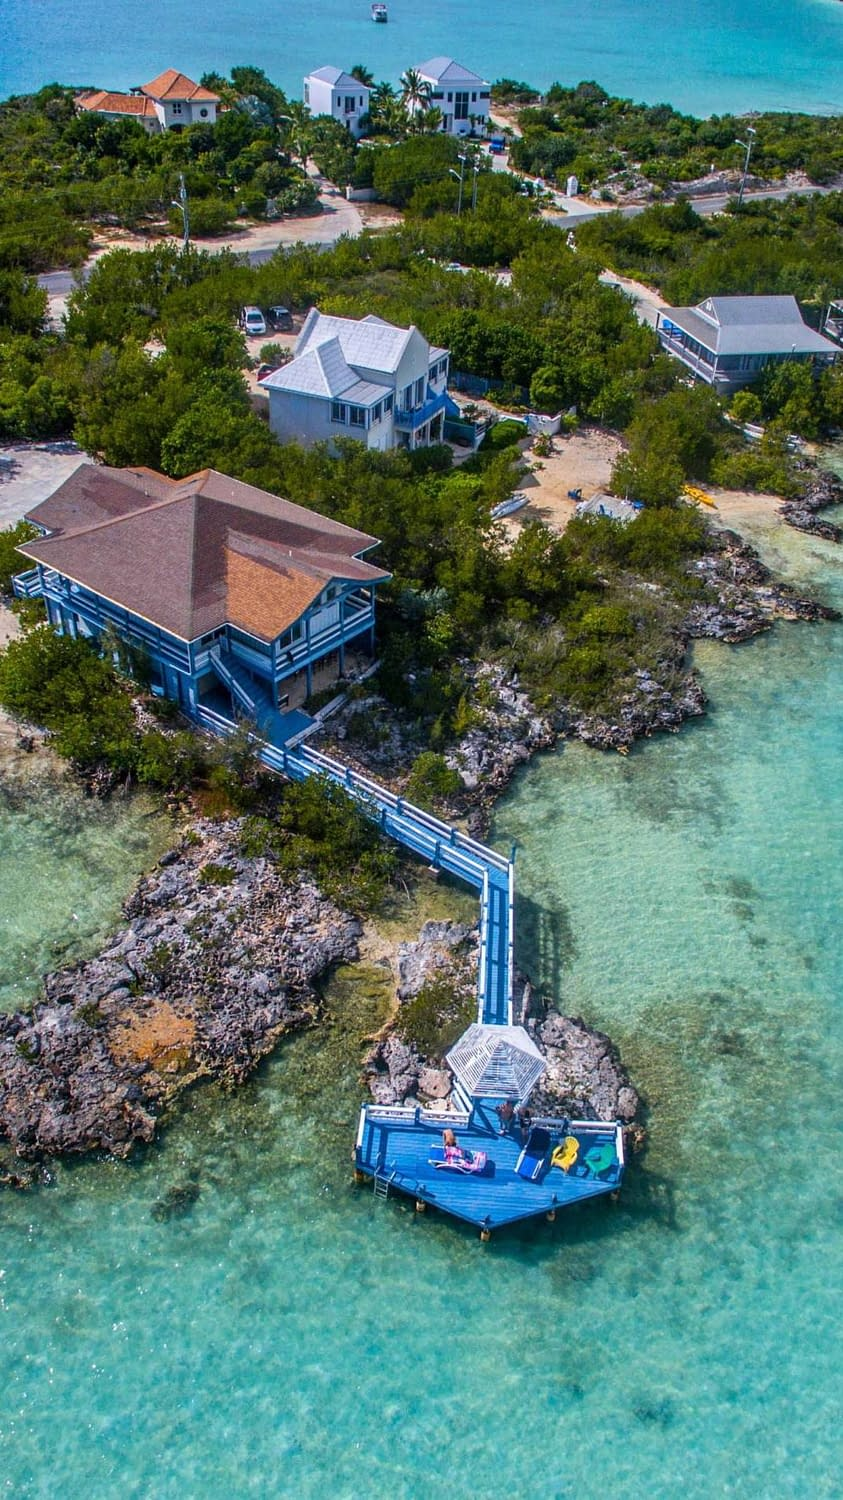 An amazing drone shot from an island in Turks and Ciacos.